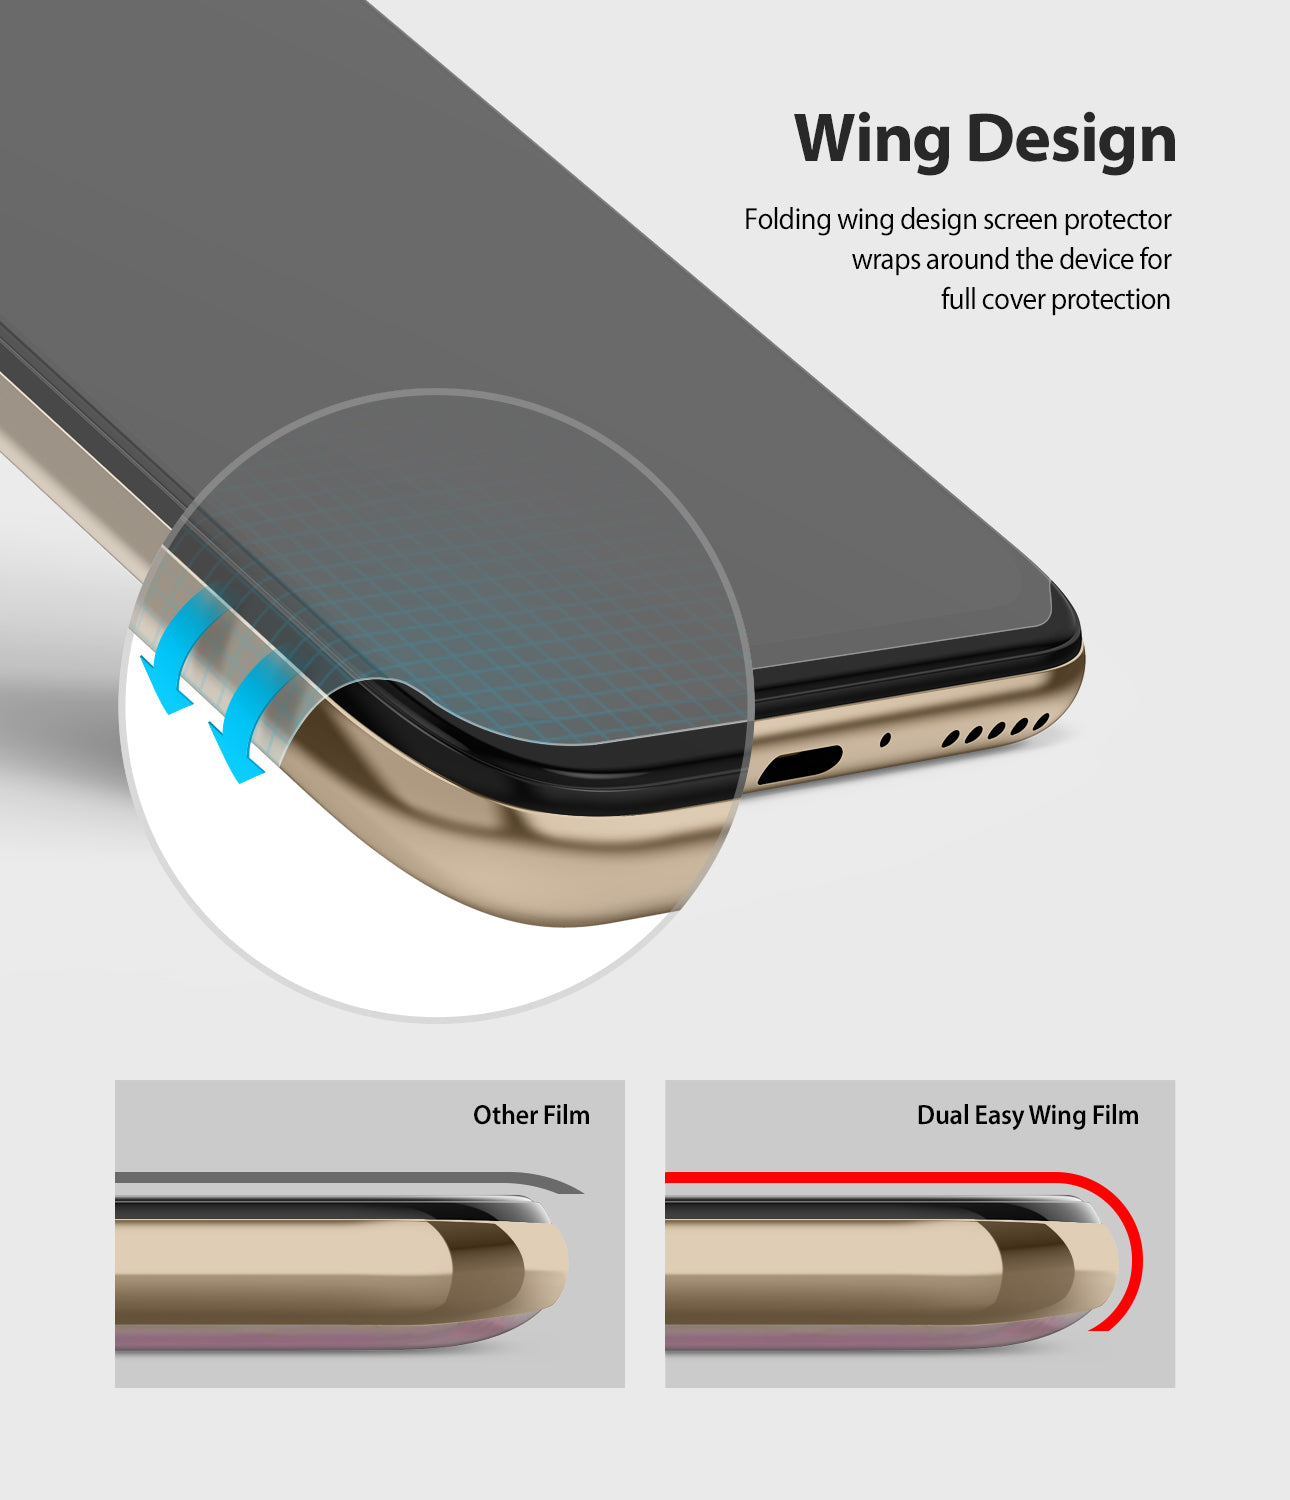 wing design - folding wing design wraps around the device for full cover protection